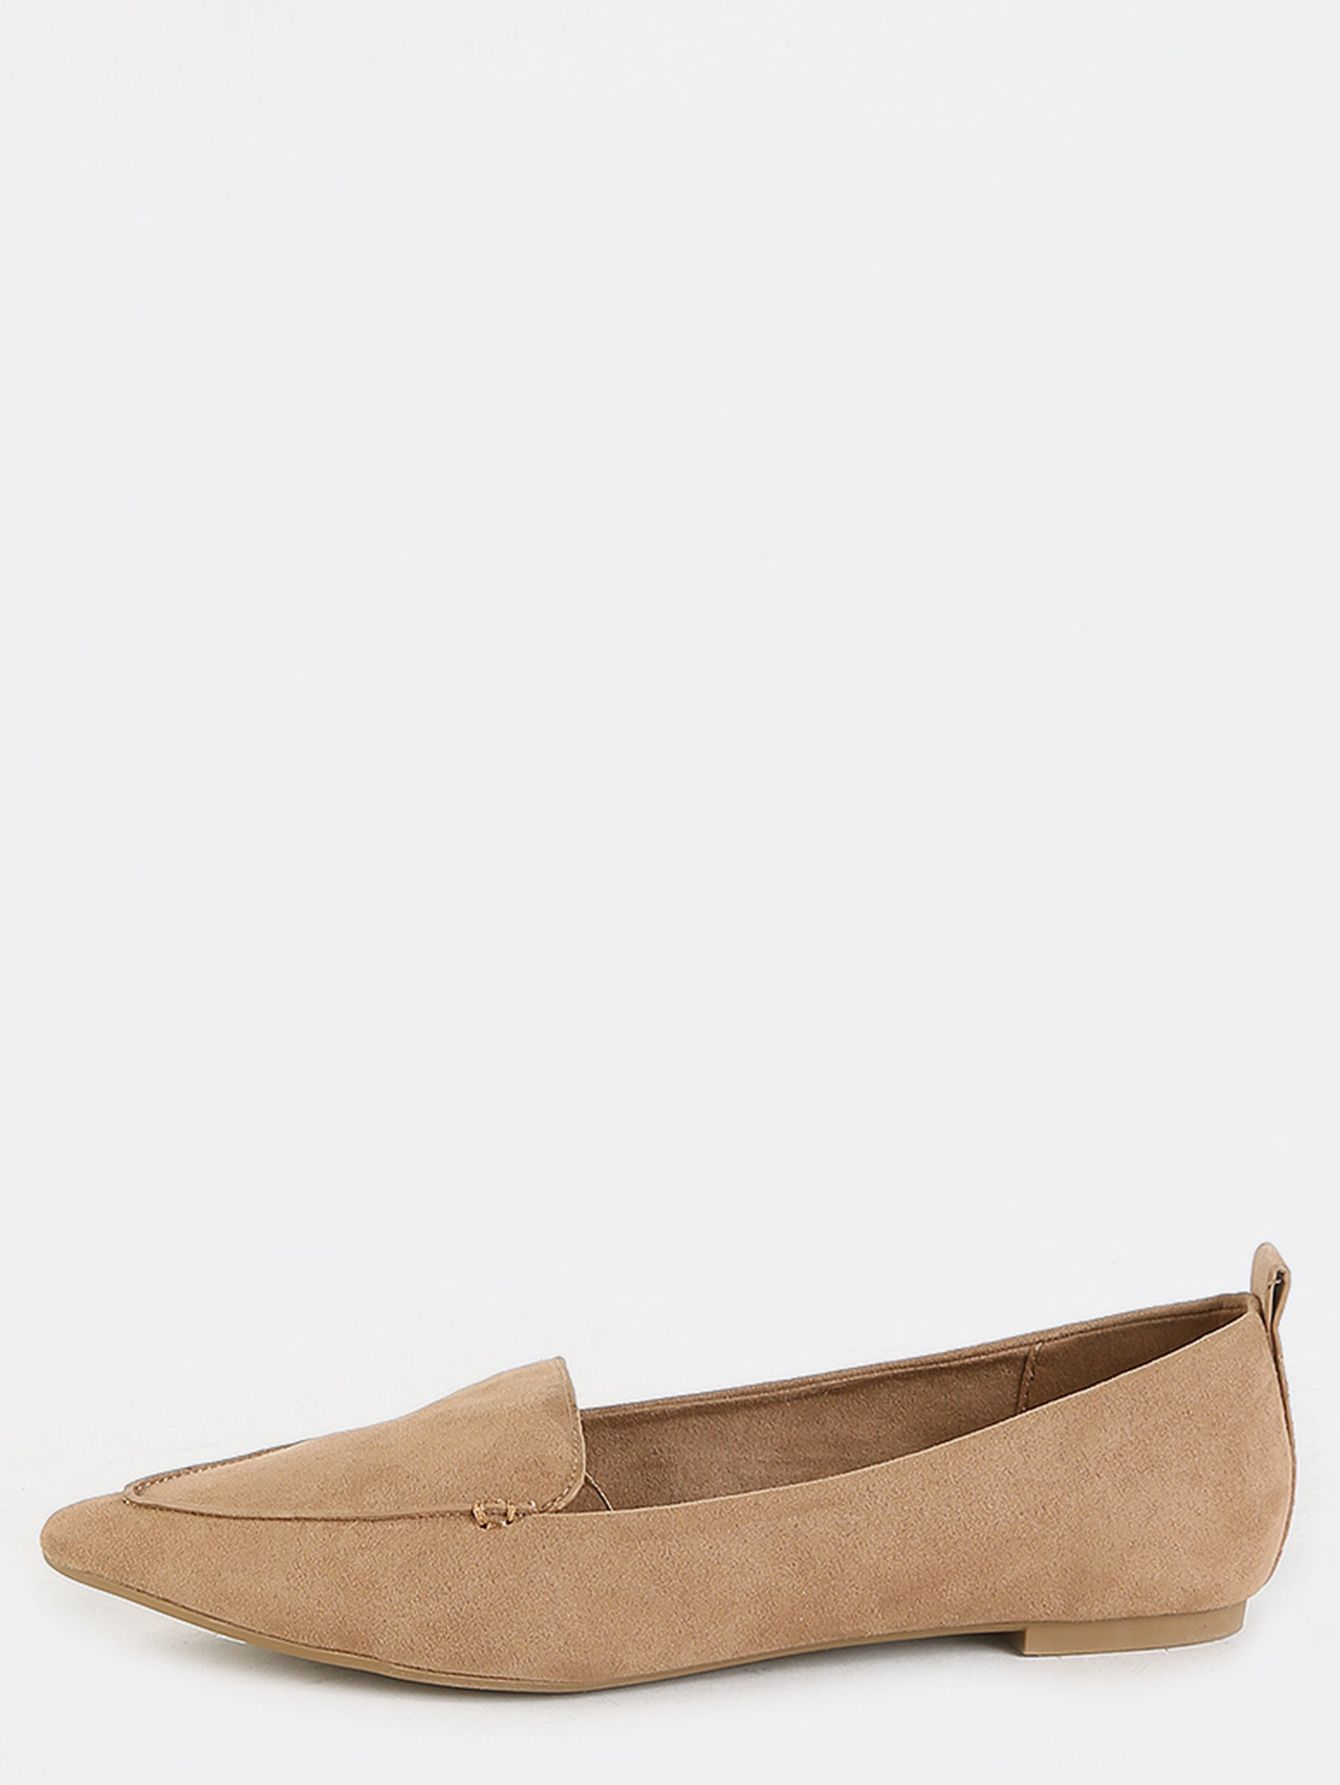 7f1b2044623d Boho meets sophisticated with the Pointed Toe Moccasin Flats! Features a pointy  toe